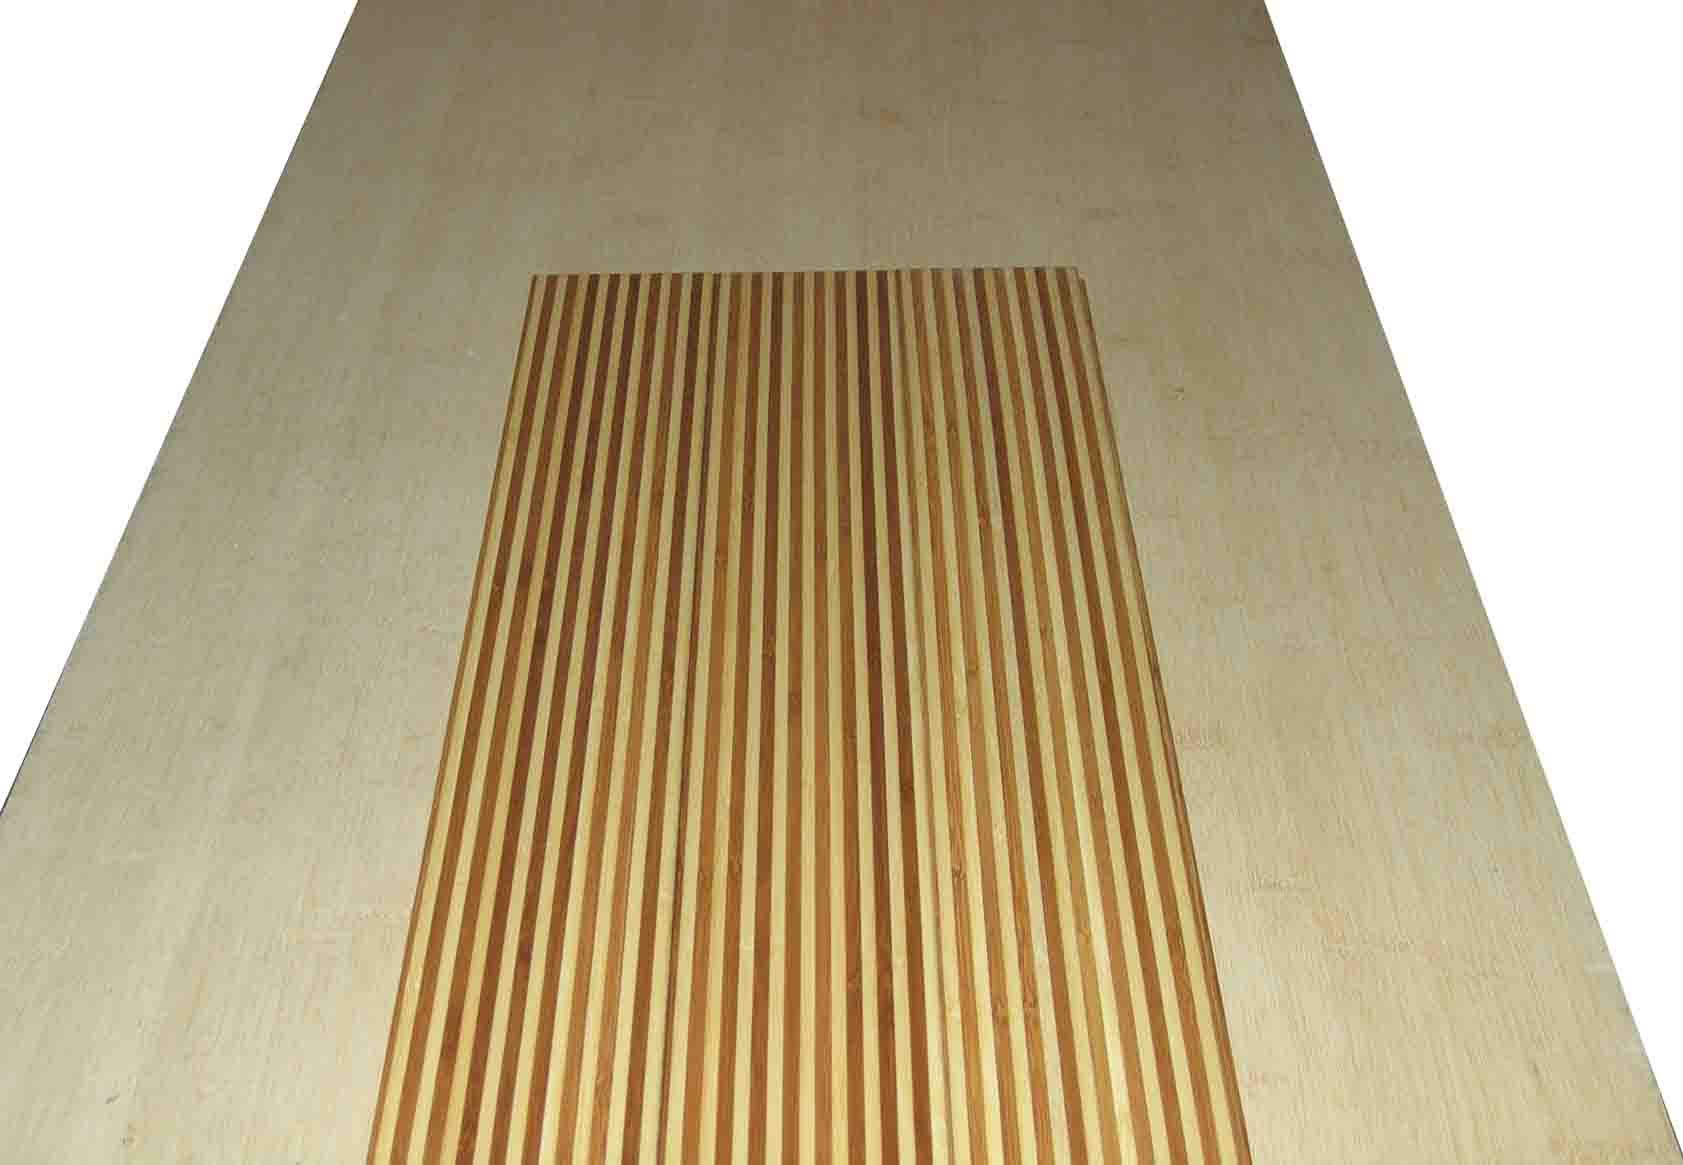 Bamboo Flooring I Think This Looks Great Bamboo Flooring Bamboo Hardwood Flooring Flooring